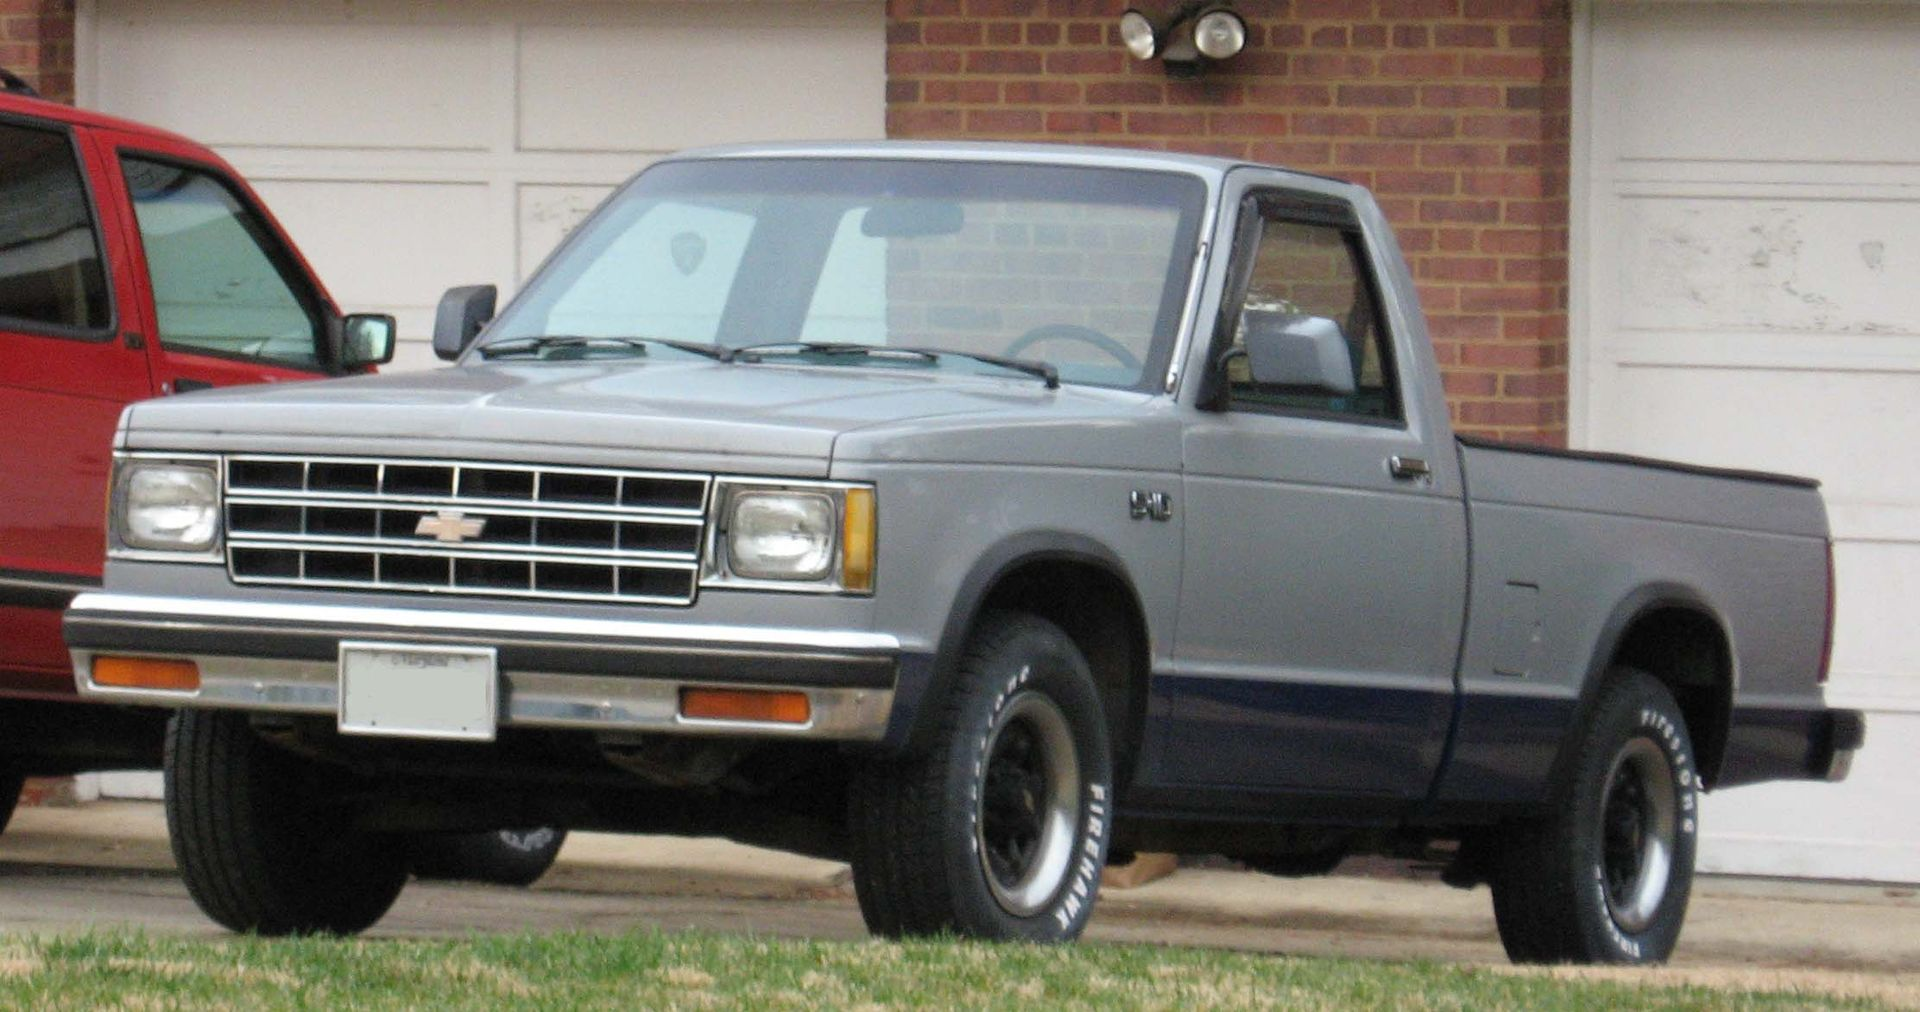 1st-Chevrolet-S10 Cool Review About Chevy S10 tow Capacity with Breathtaking Gallery Cars Review